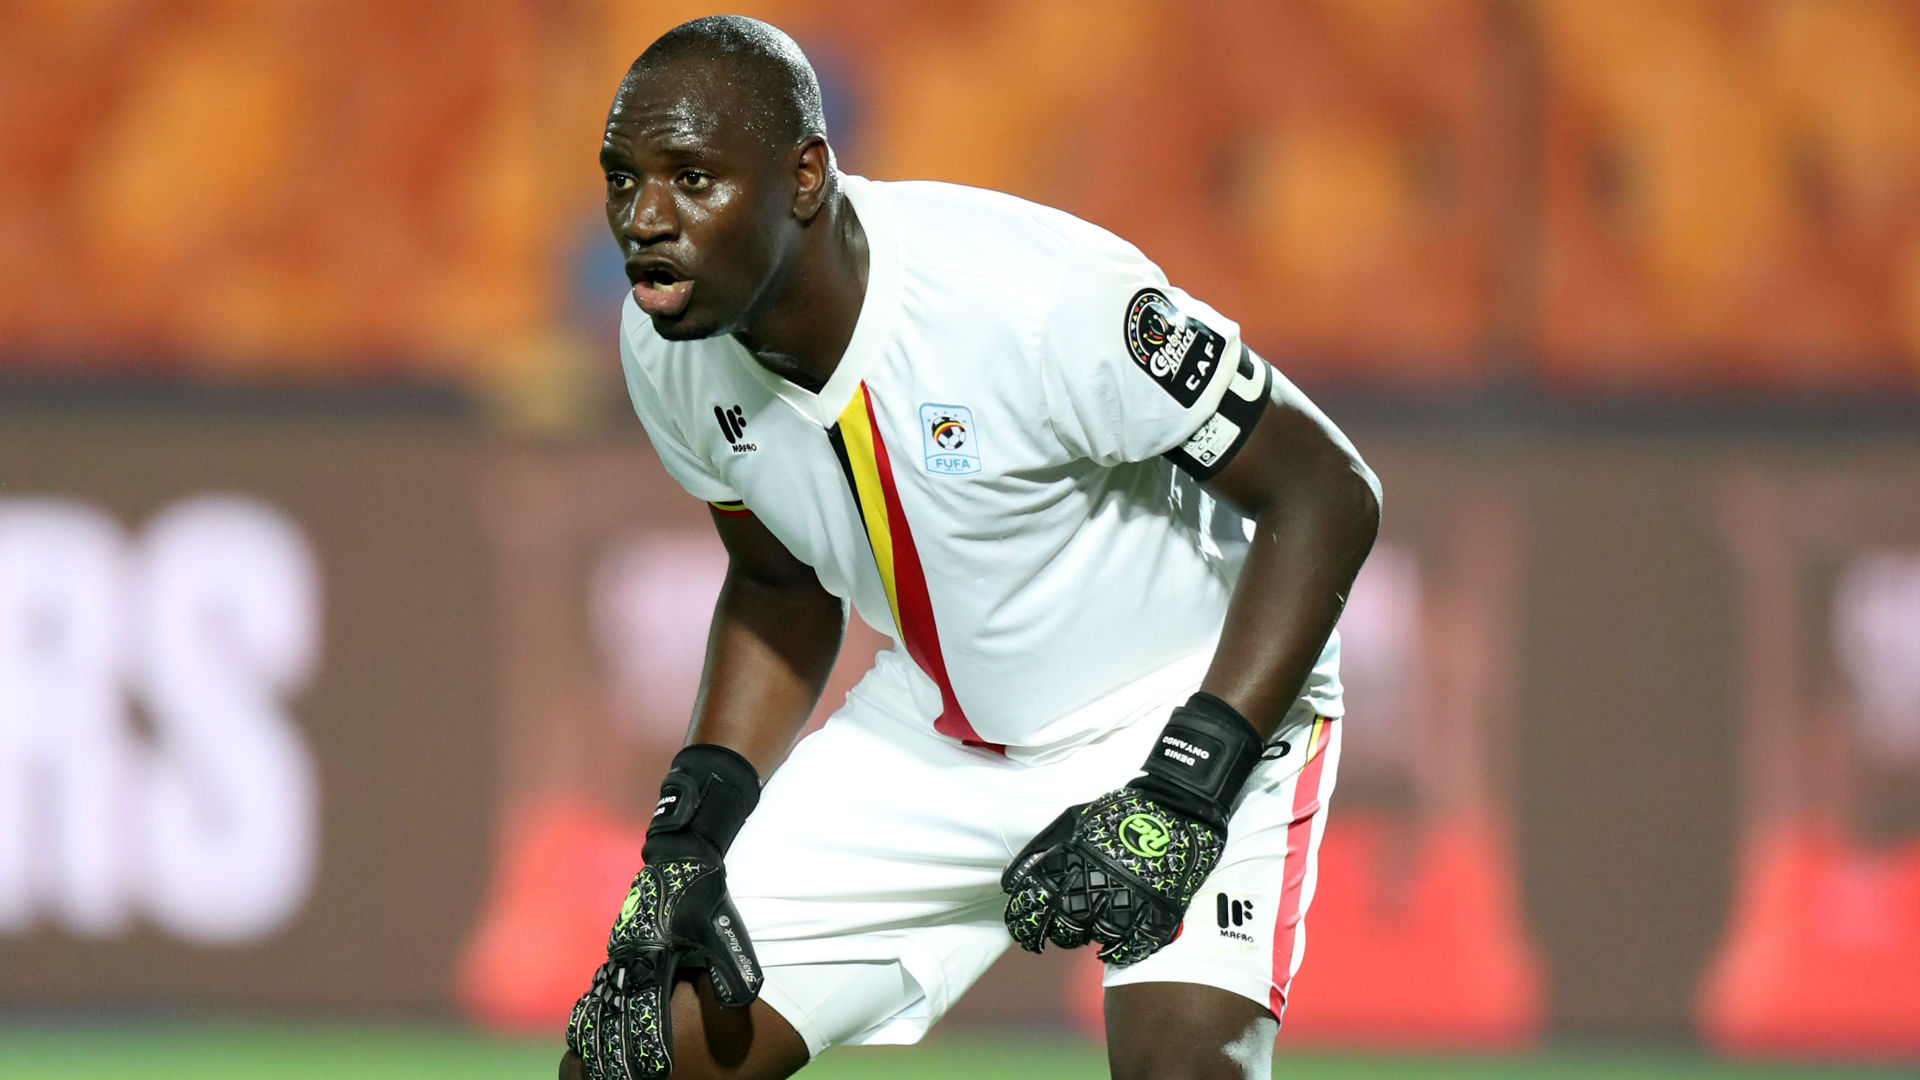 Denis Onyango Calls on Clubs to Recognize Ex Players Before FUFA Intervention - Newslibre